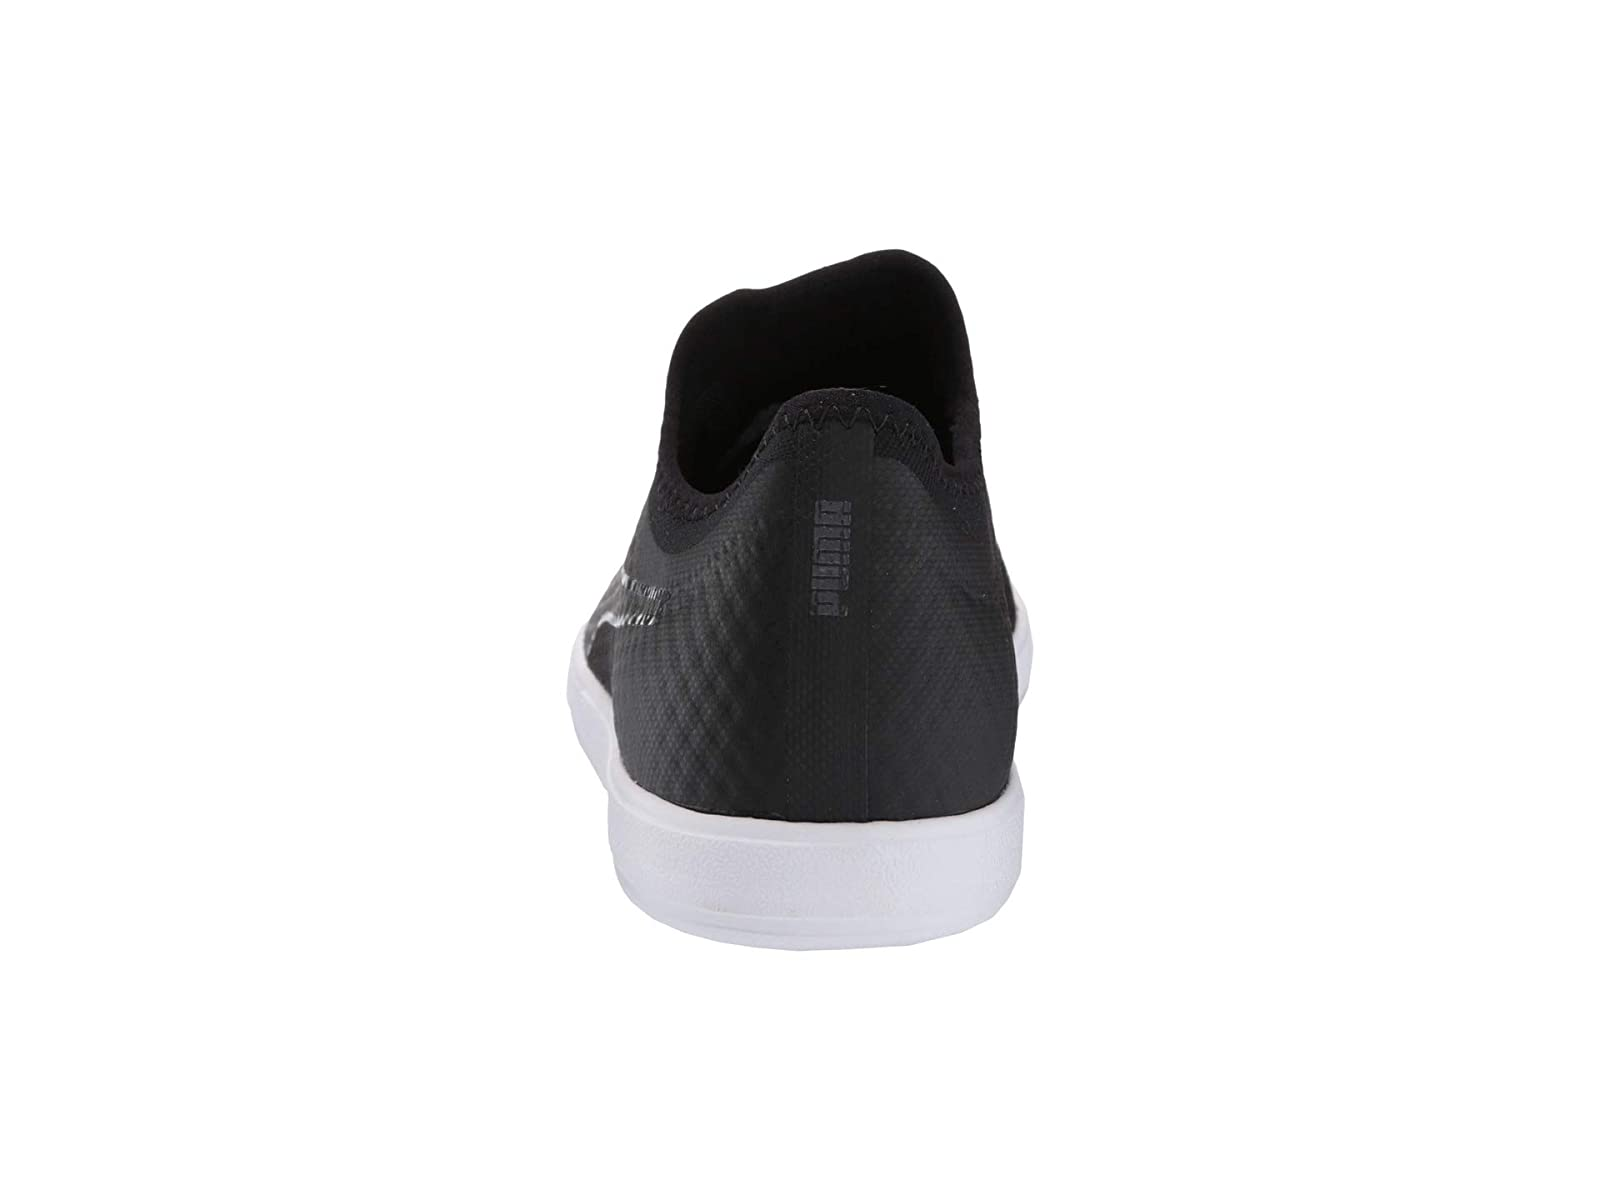 Man-039-s-Sneakers-amp-Athletic-Shoes-PUMA-365-Concrete-Lite thumbnail 13